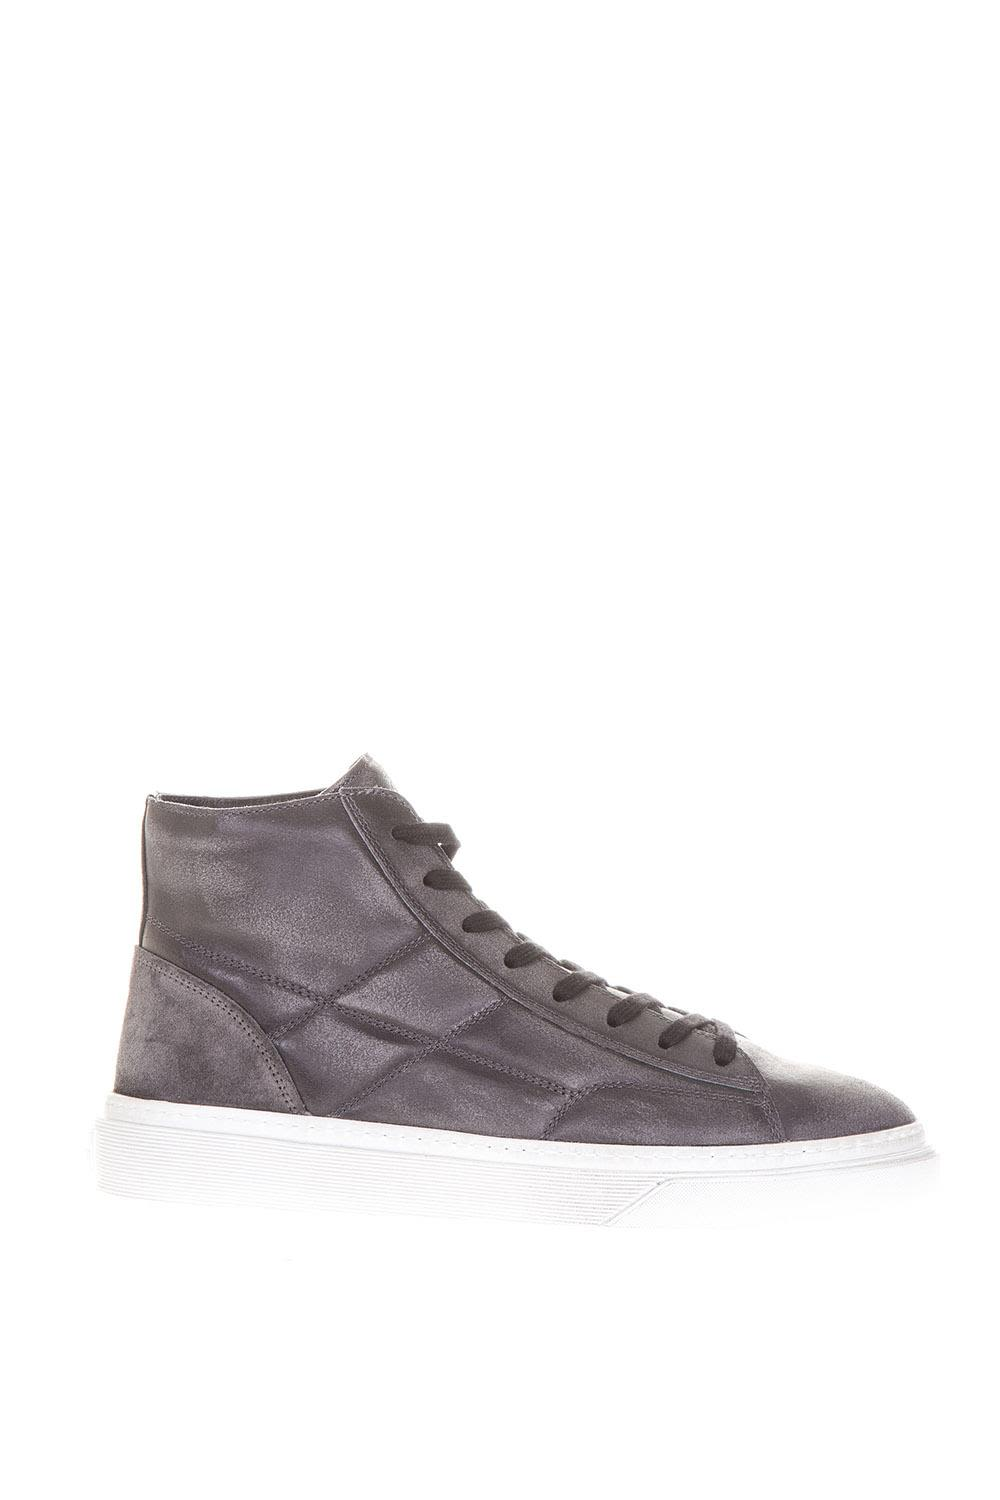 Hogan Suede High-top Sneakers With Quilted Details